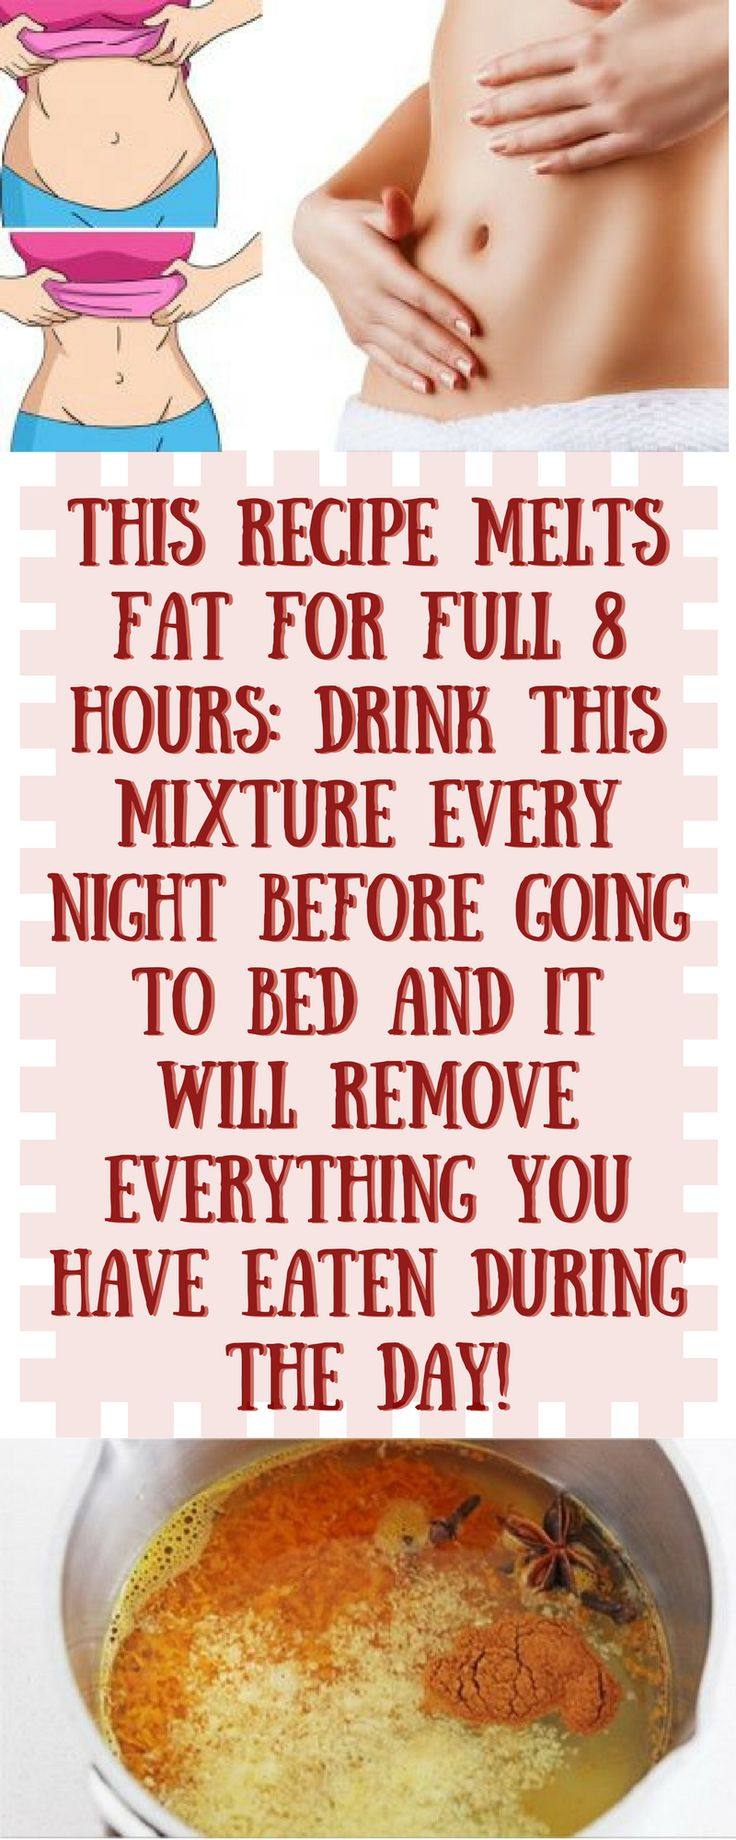 THIS RECIPE MELTS FAT FOR FULL 8 HOURS: DRINK THIS MIXTURE EVERY NIGHT BEFORE GOING TO BED AND IT WILL REMOVE EVERYTHING YOU HAVE EATEN DURING THE DAY!